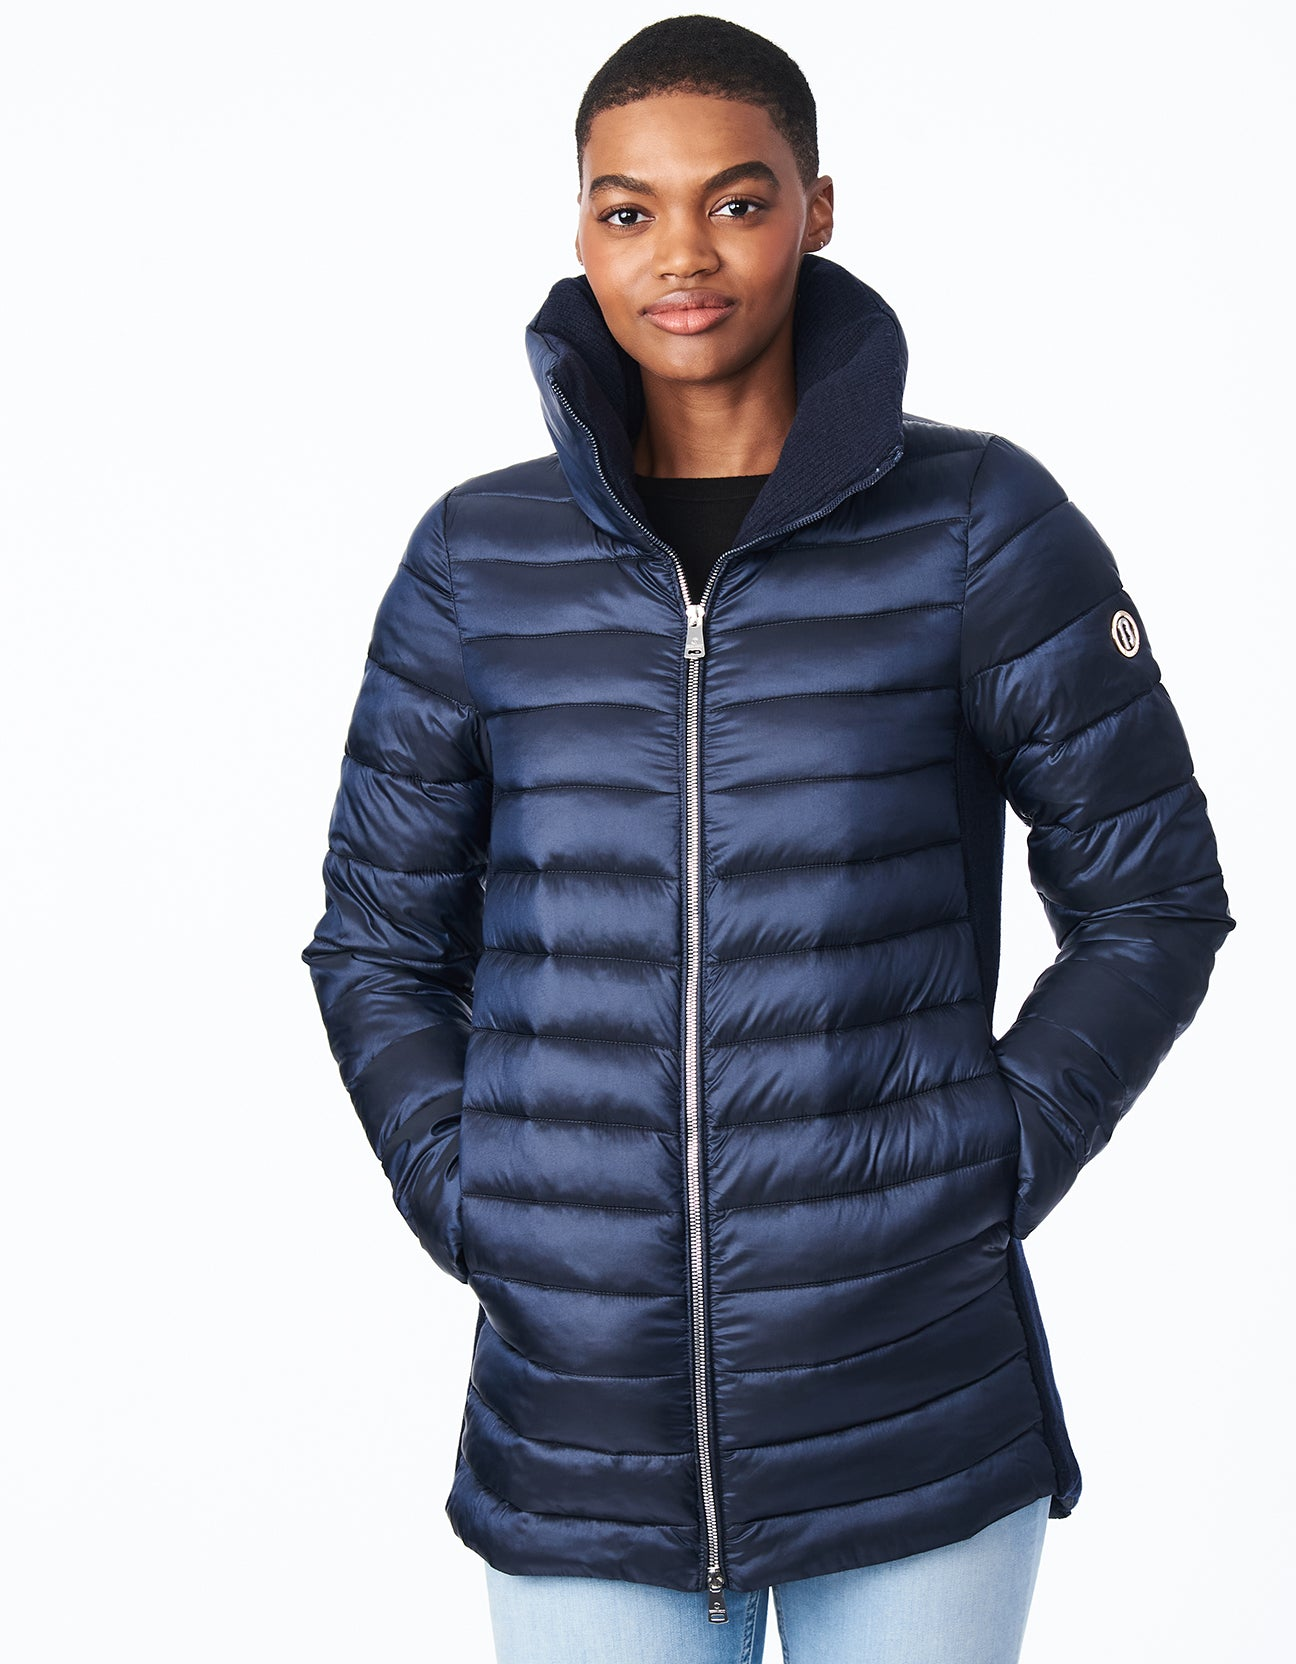 EcoPlume™ Oversize Packable Coat with Knit Side Trim